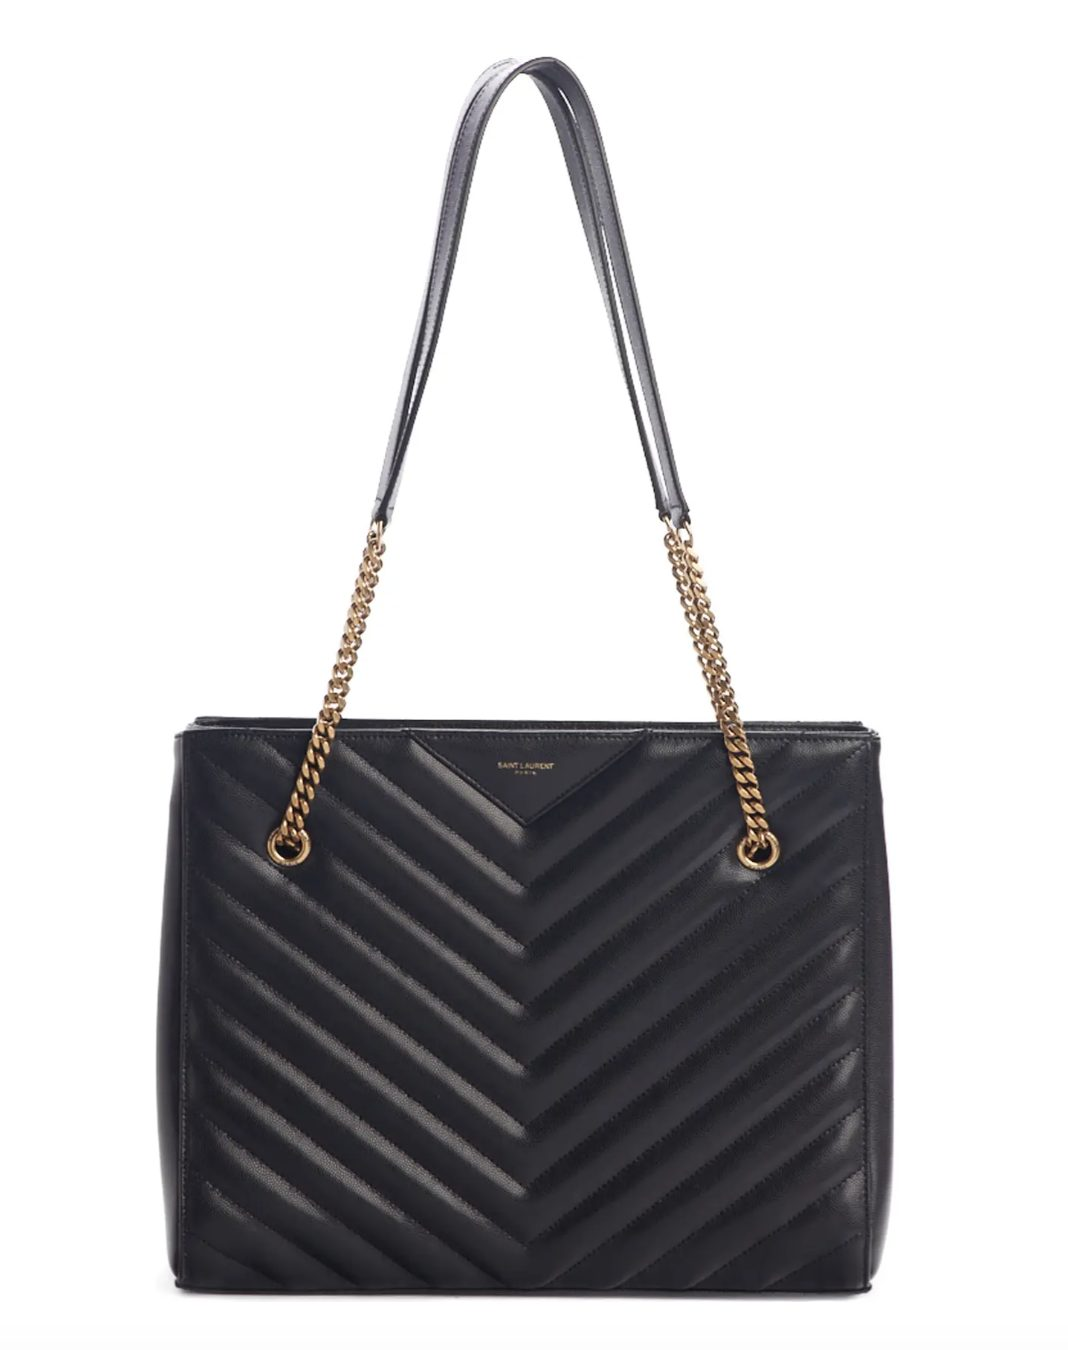 Saint Laurent Medium Tribeca Quilted Leather Tote in black for best designer tote bags for travel